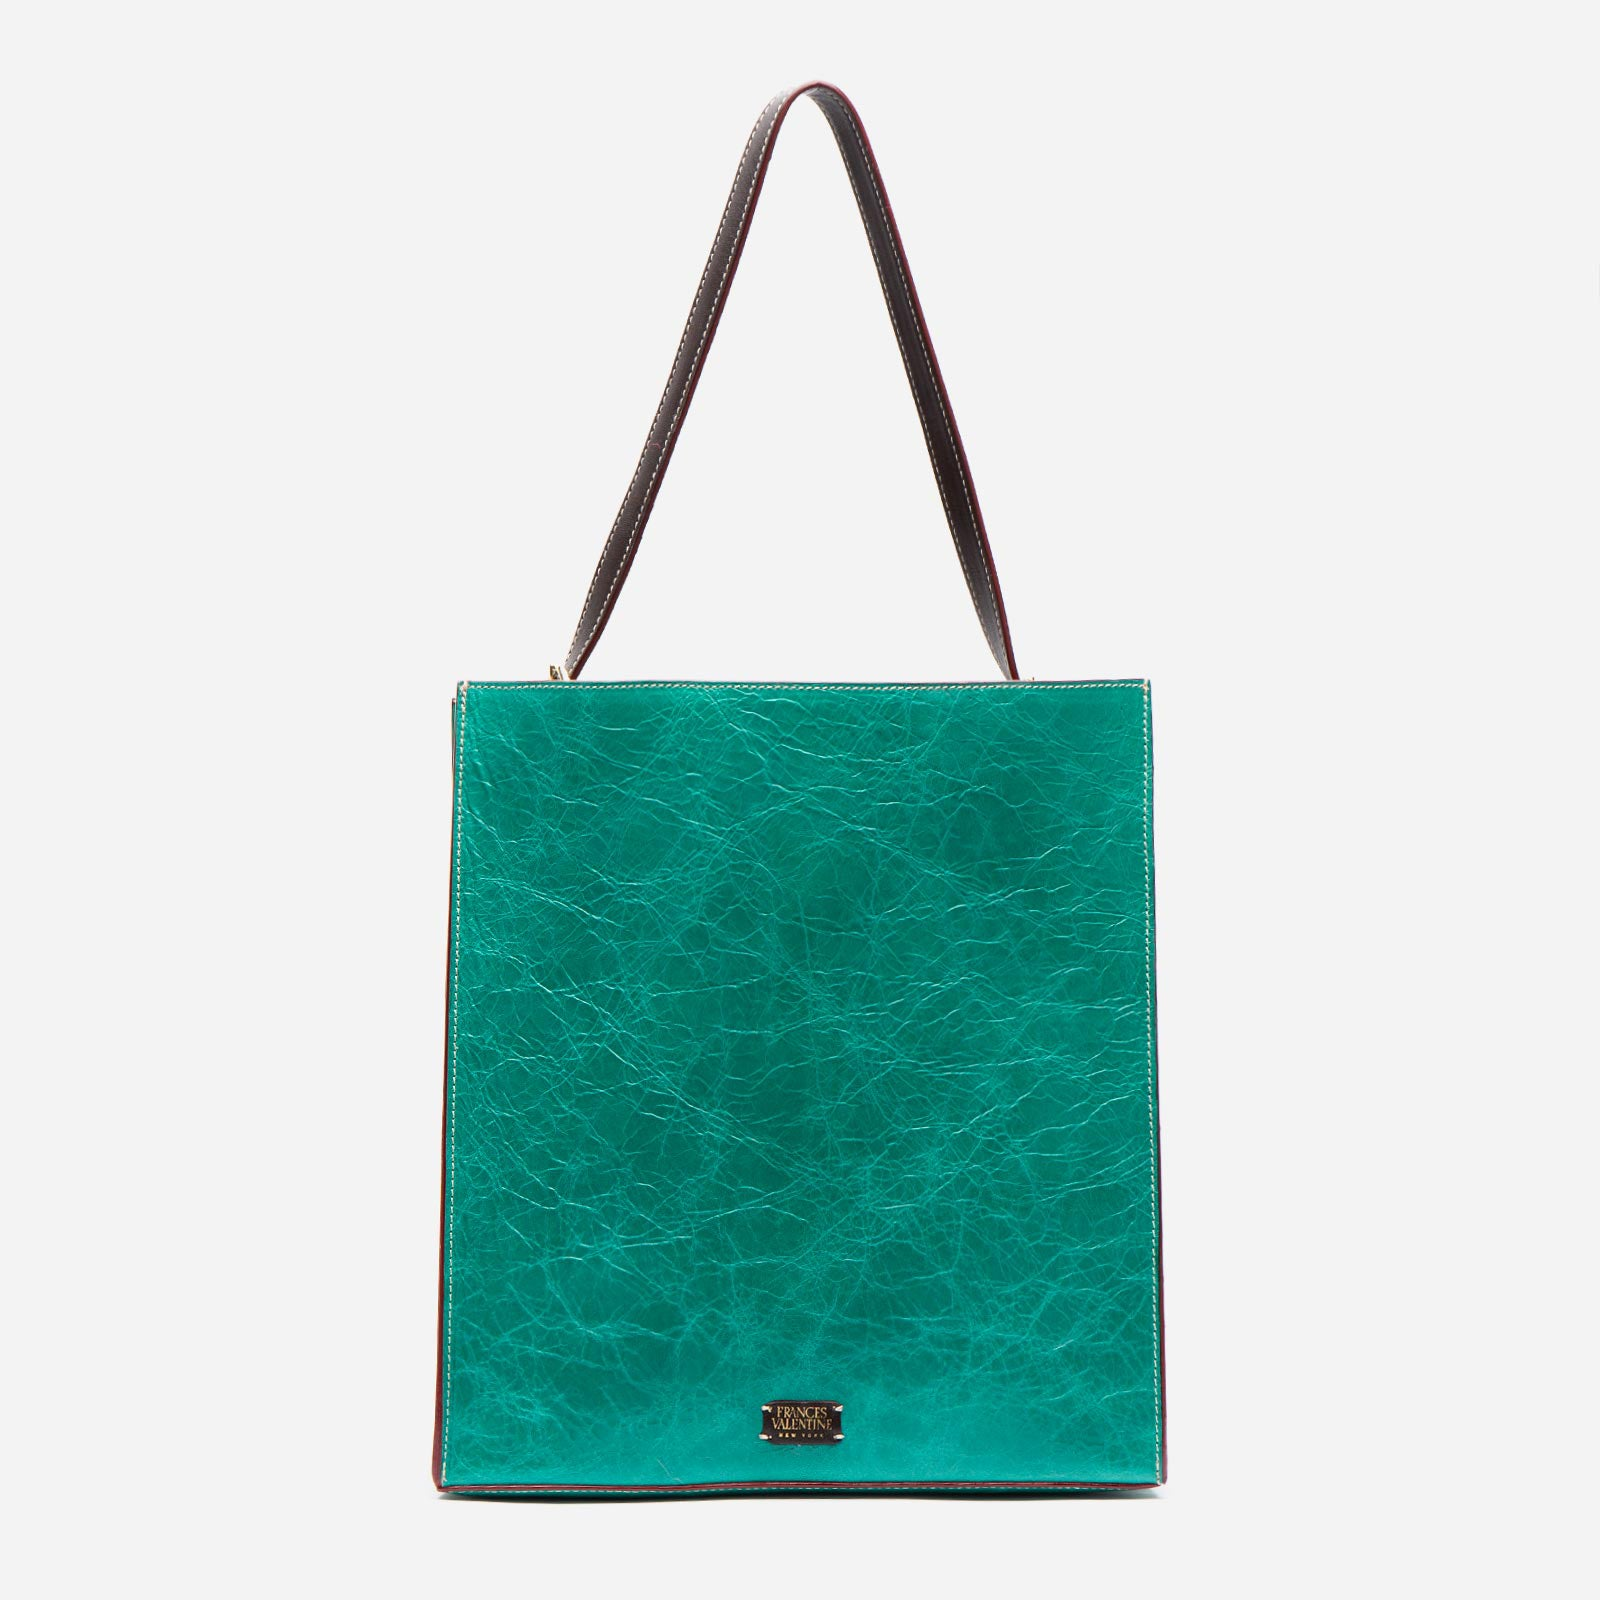 Finn Naplak Leather Green Oyster - Frances Valentine